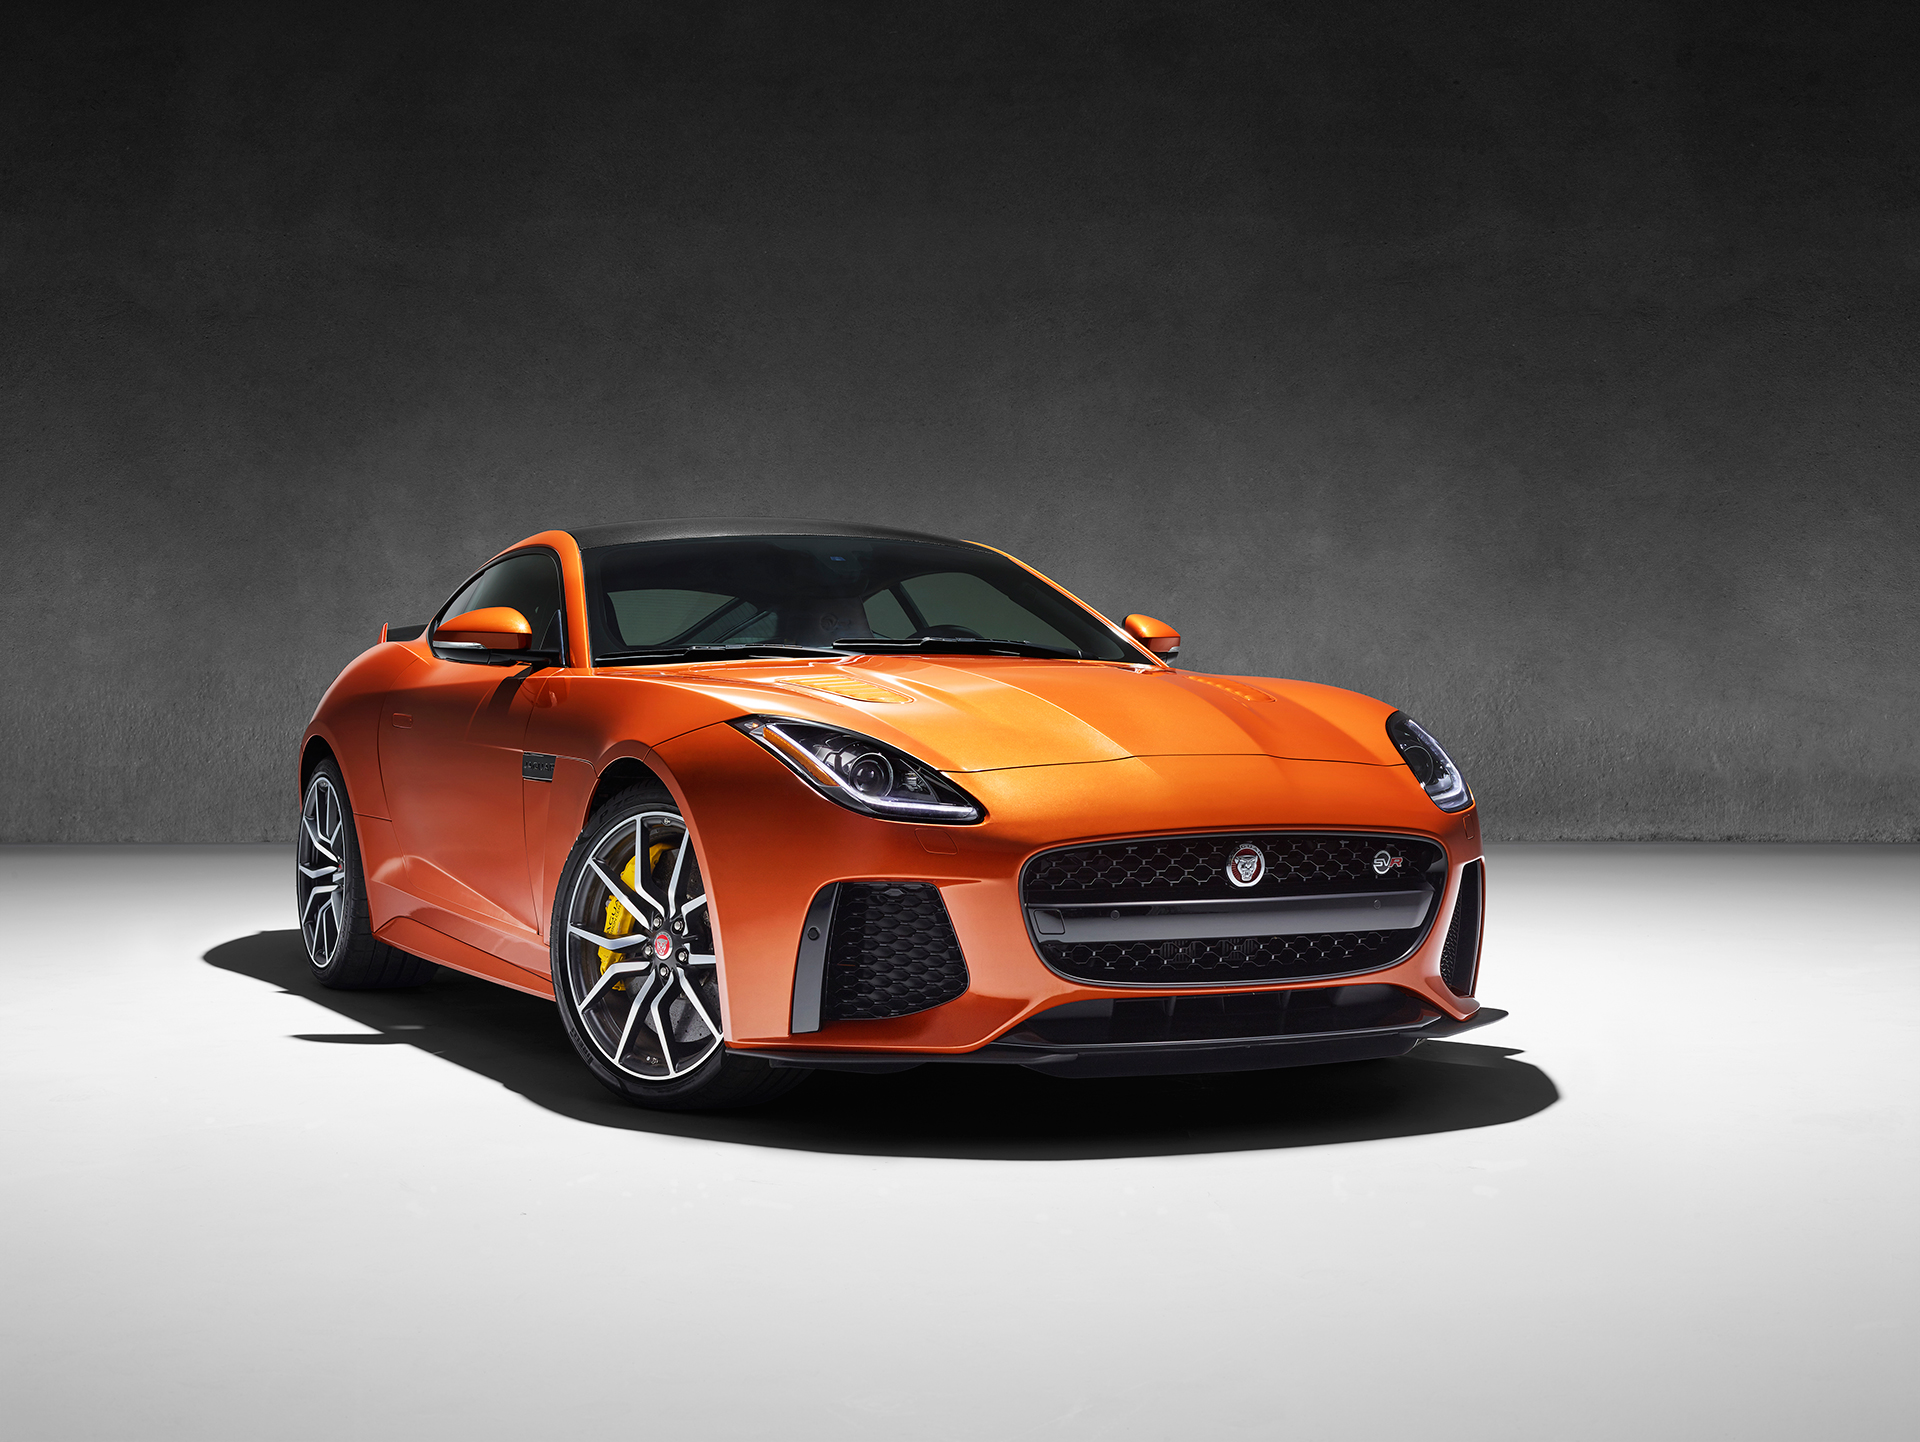 Jaguar F-TYPE SVR - 2016 - profil avant / front side-face